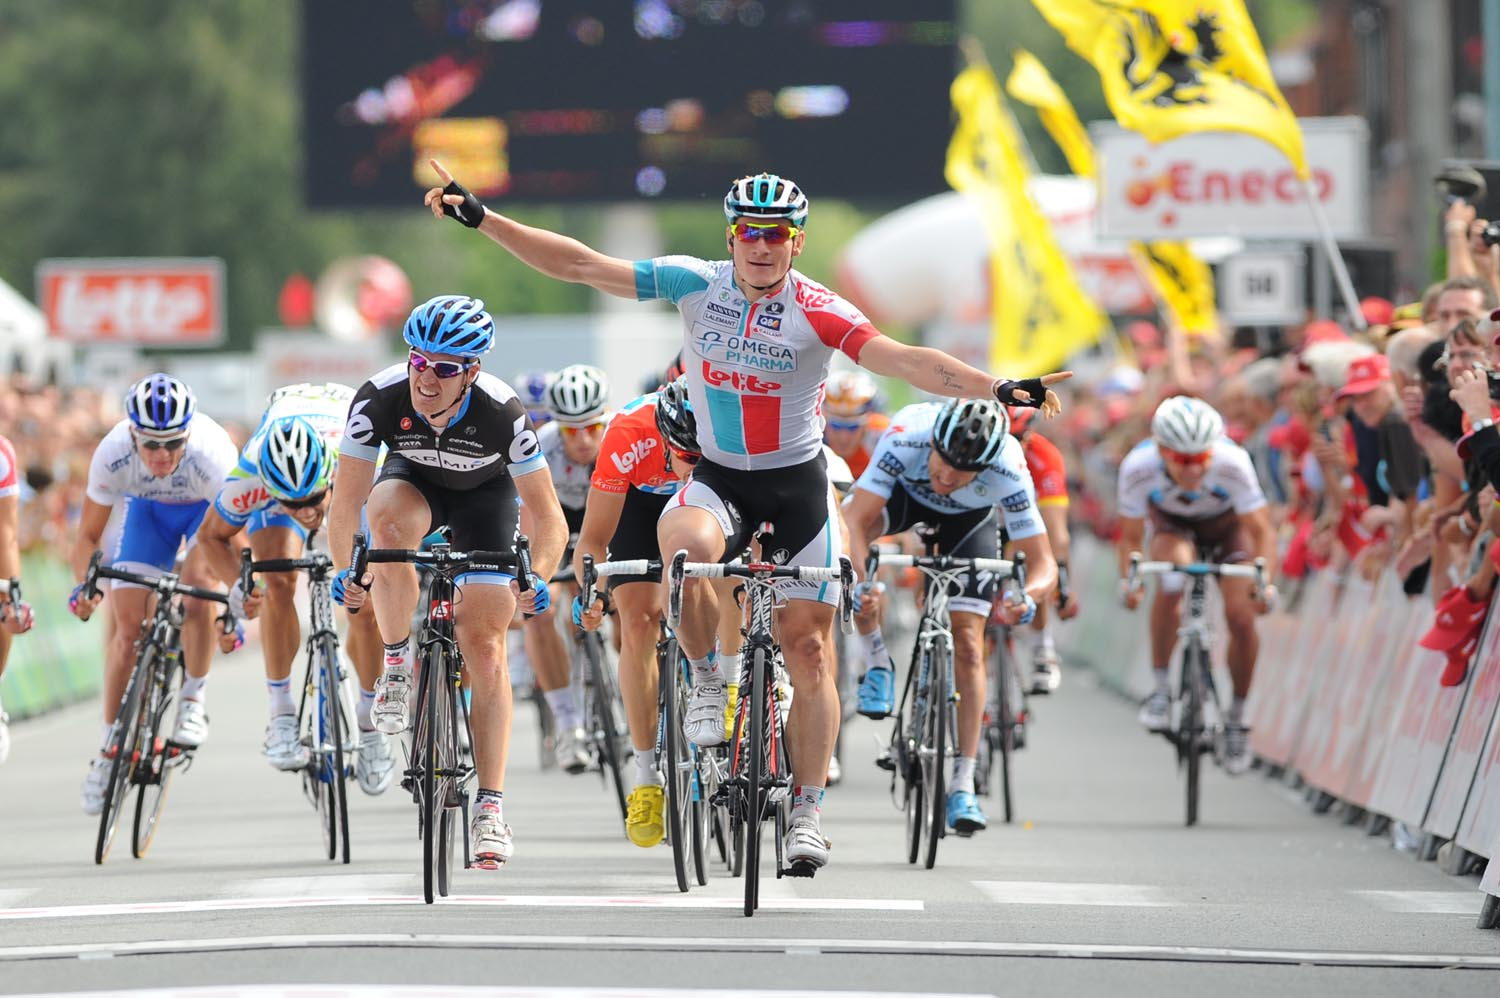 Andre Greipel wins, Eneco Tour 2011, stage two